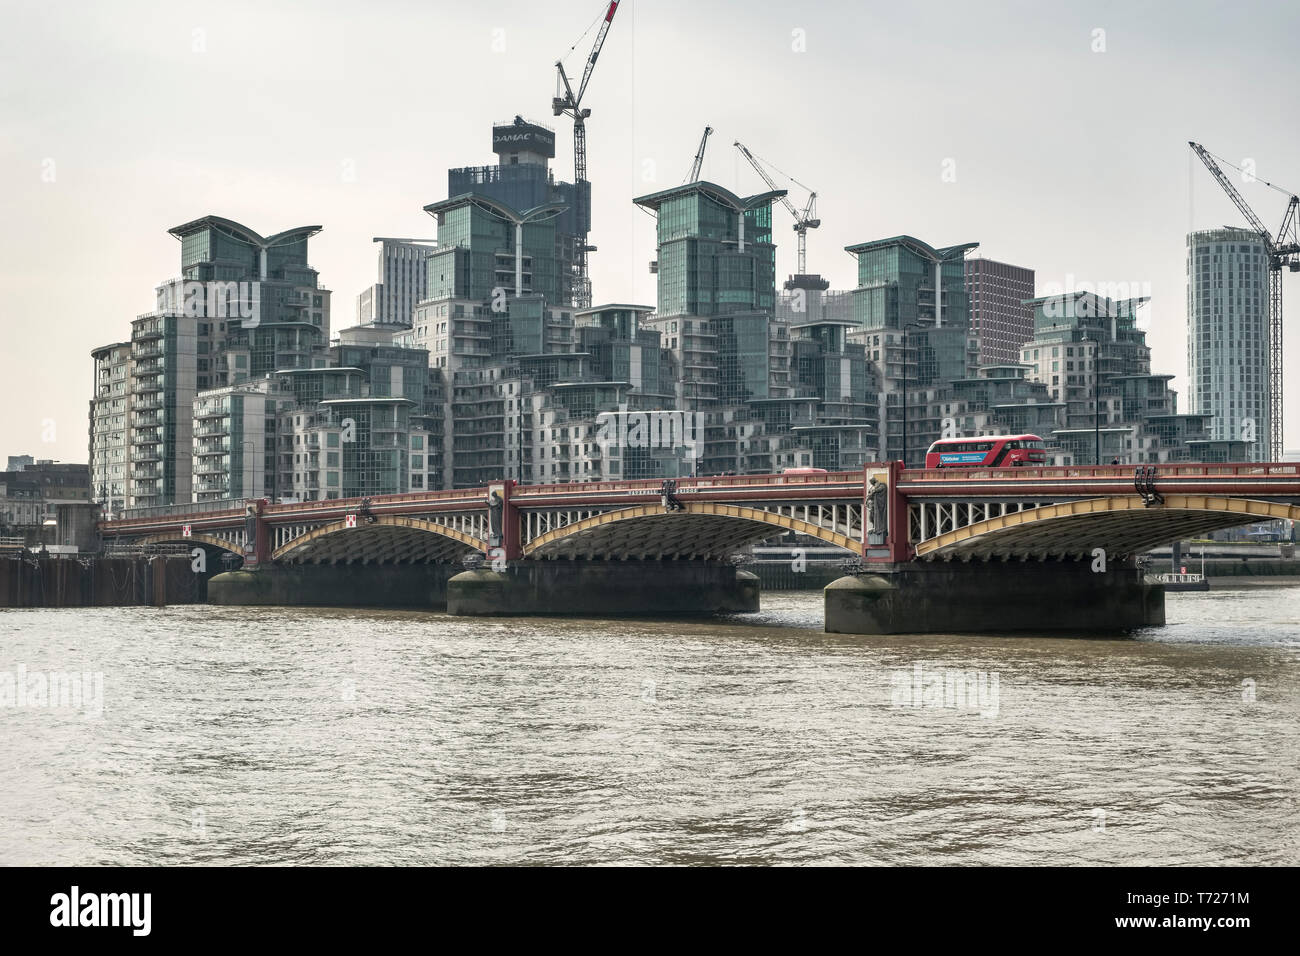 London. Vauxhall Bridge over the River Thames, and the St George Wharf development. This has twice been voted the world's worst building - Stock Image